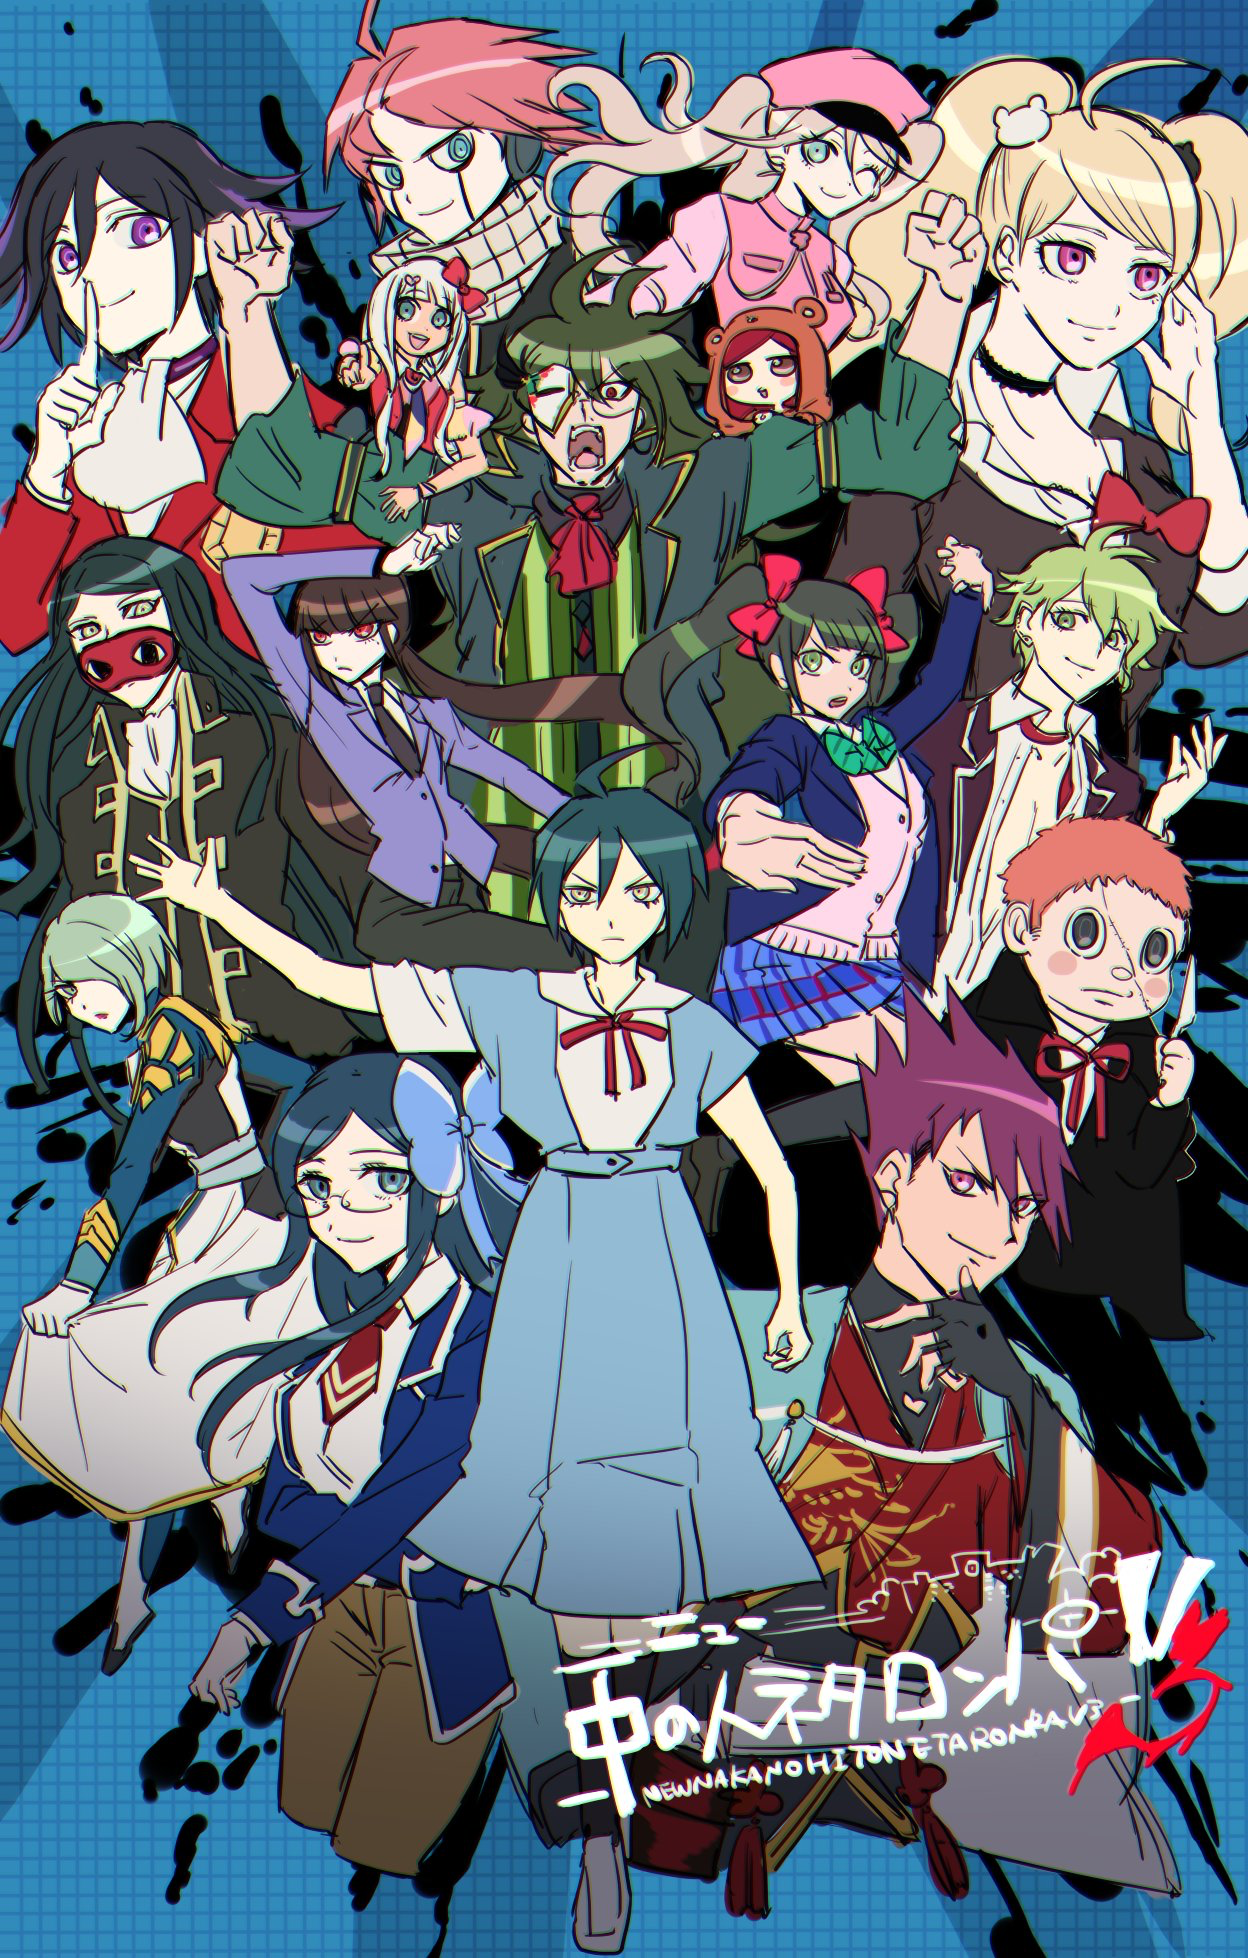 Took Me A Minute To Figure Out The Drv3 Cast In Outfits Of Other Characters Their Voice Actors Voiced Danganronpa Danganronpa Memes Anime Последние твиты от ryoma hoshi(@tennisorrow). characters their voice actors voiced